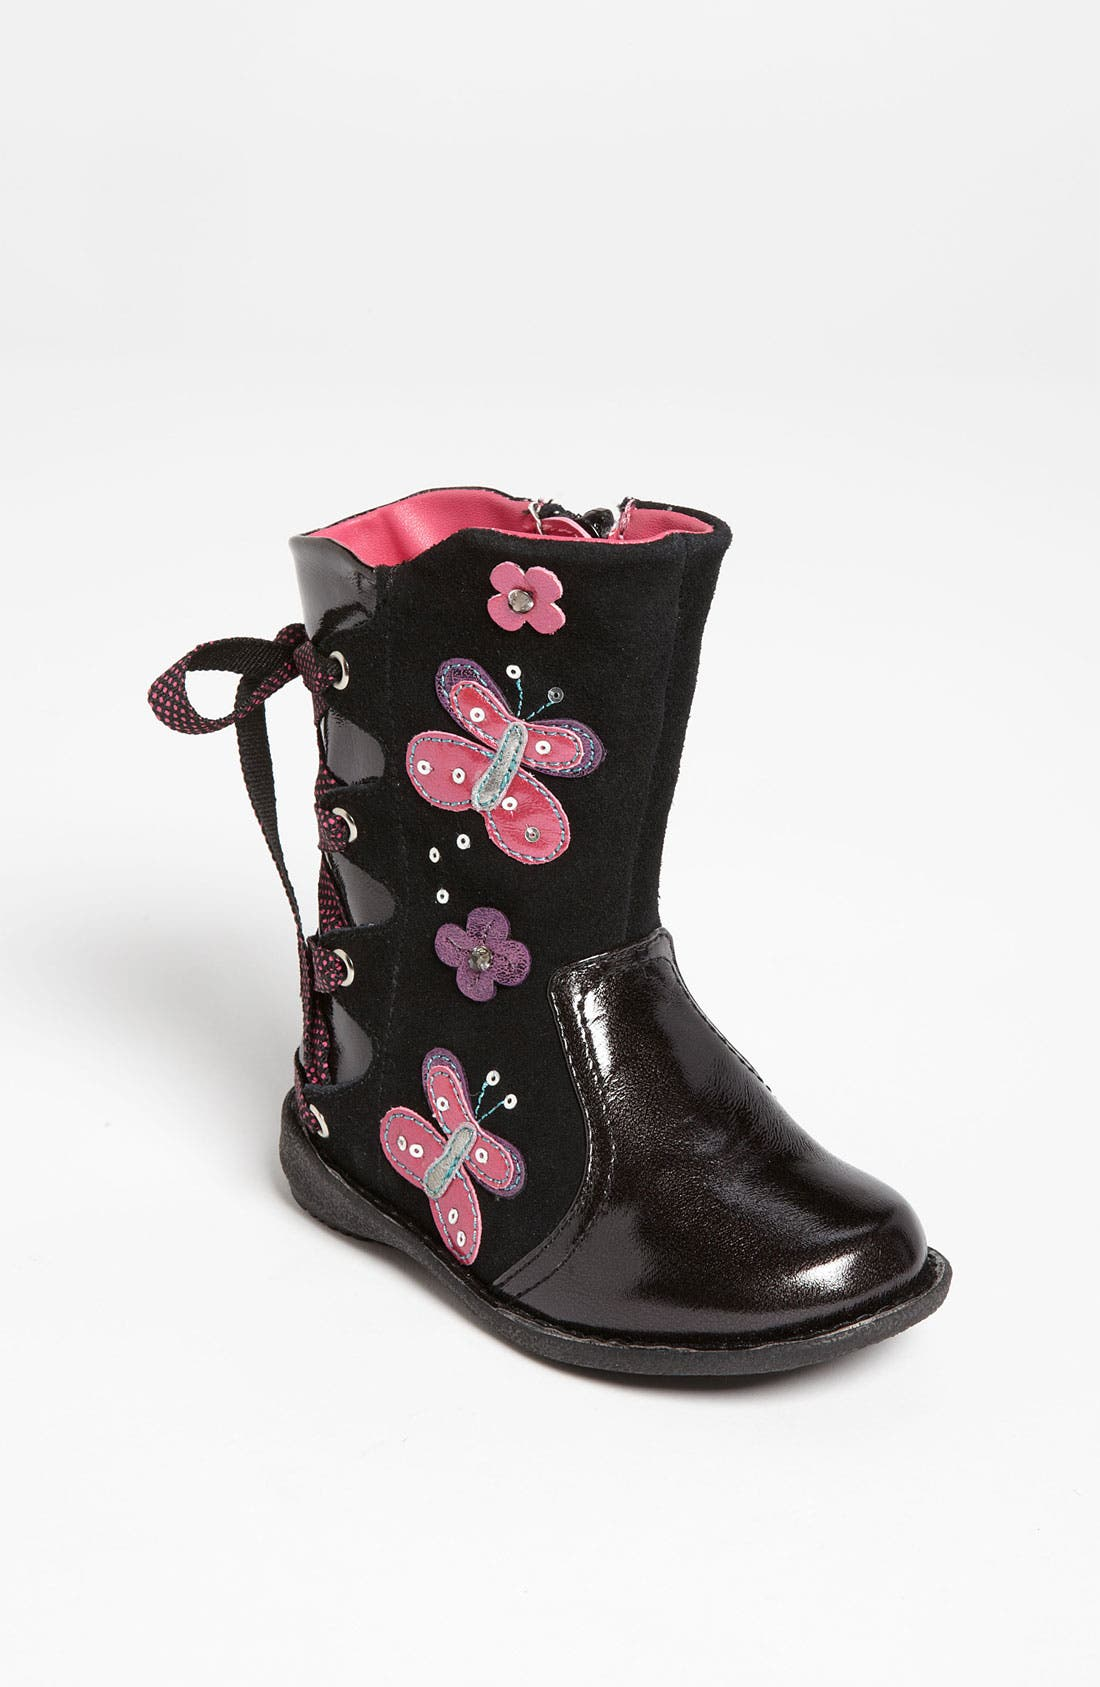 Alternate Image 1 Selected - Kenneth Cole Reaction 'Pip Pop' Boot (Walker & Toddler)